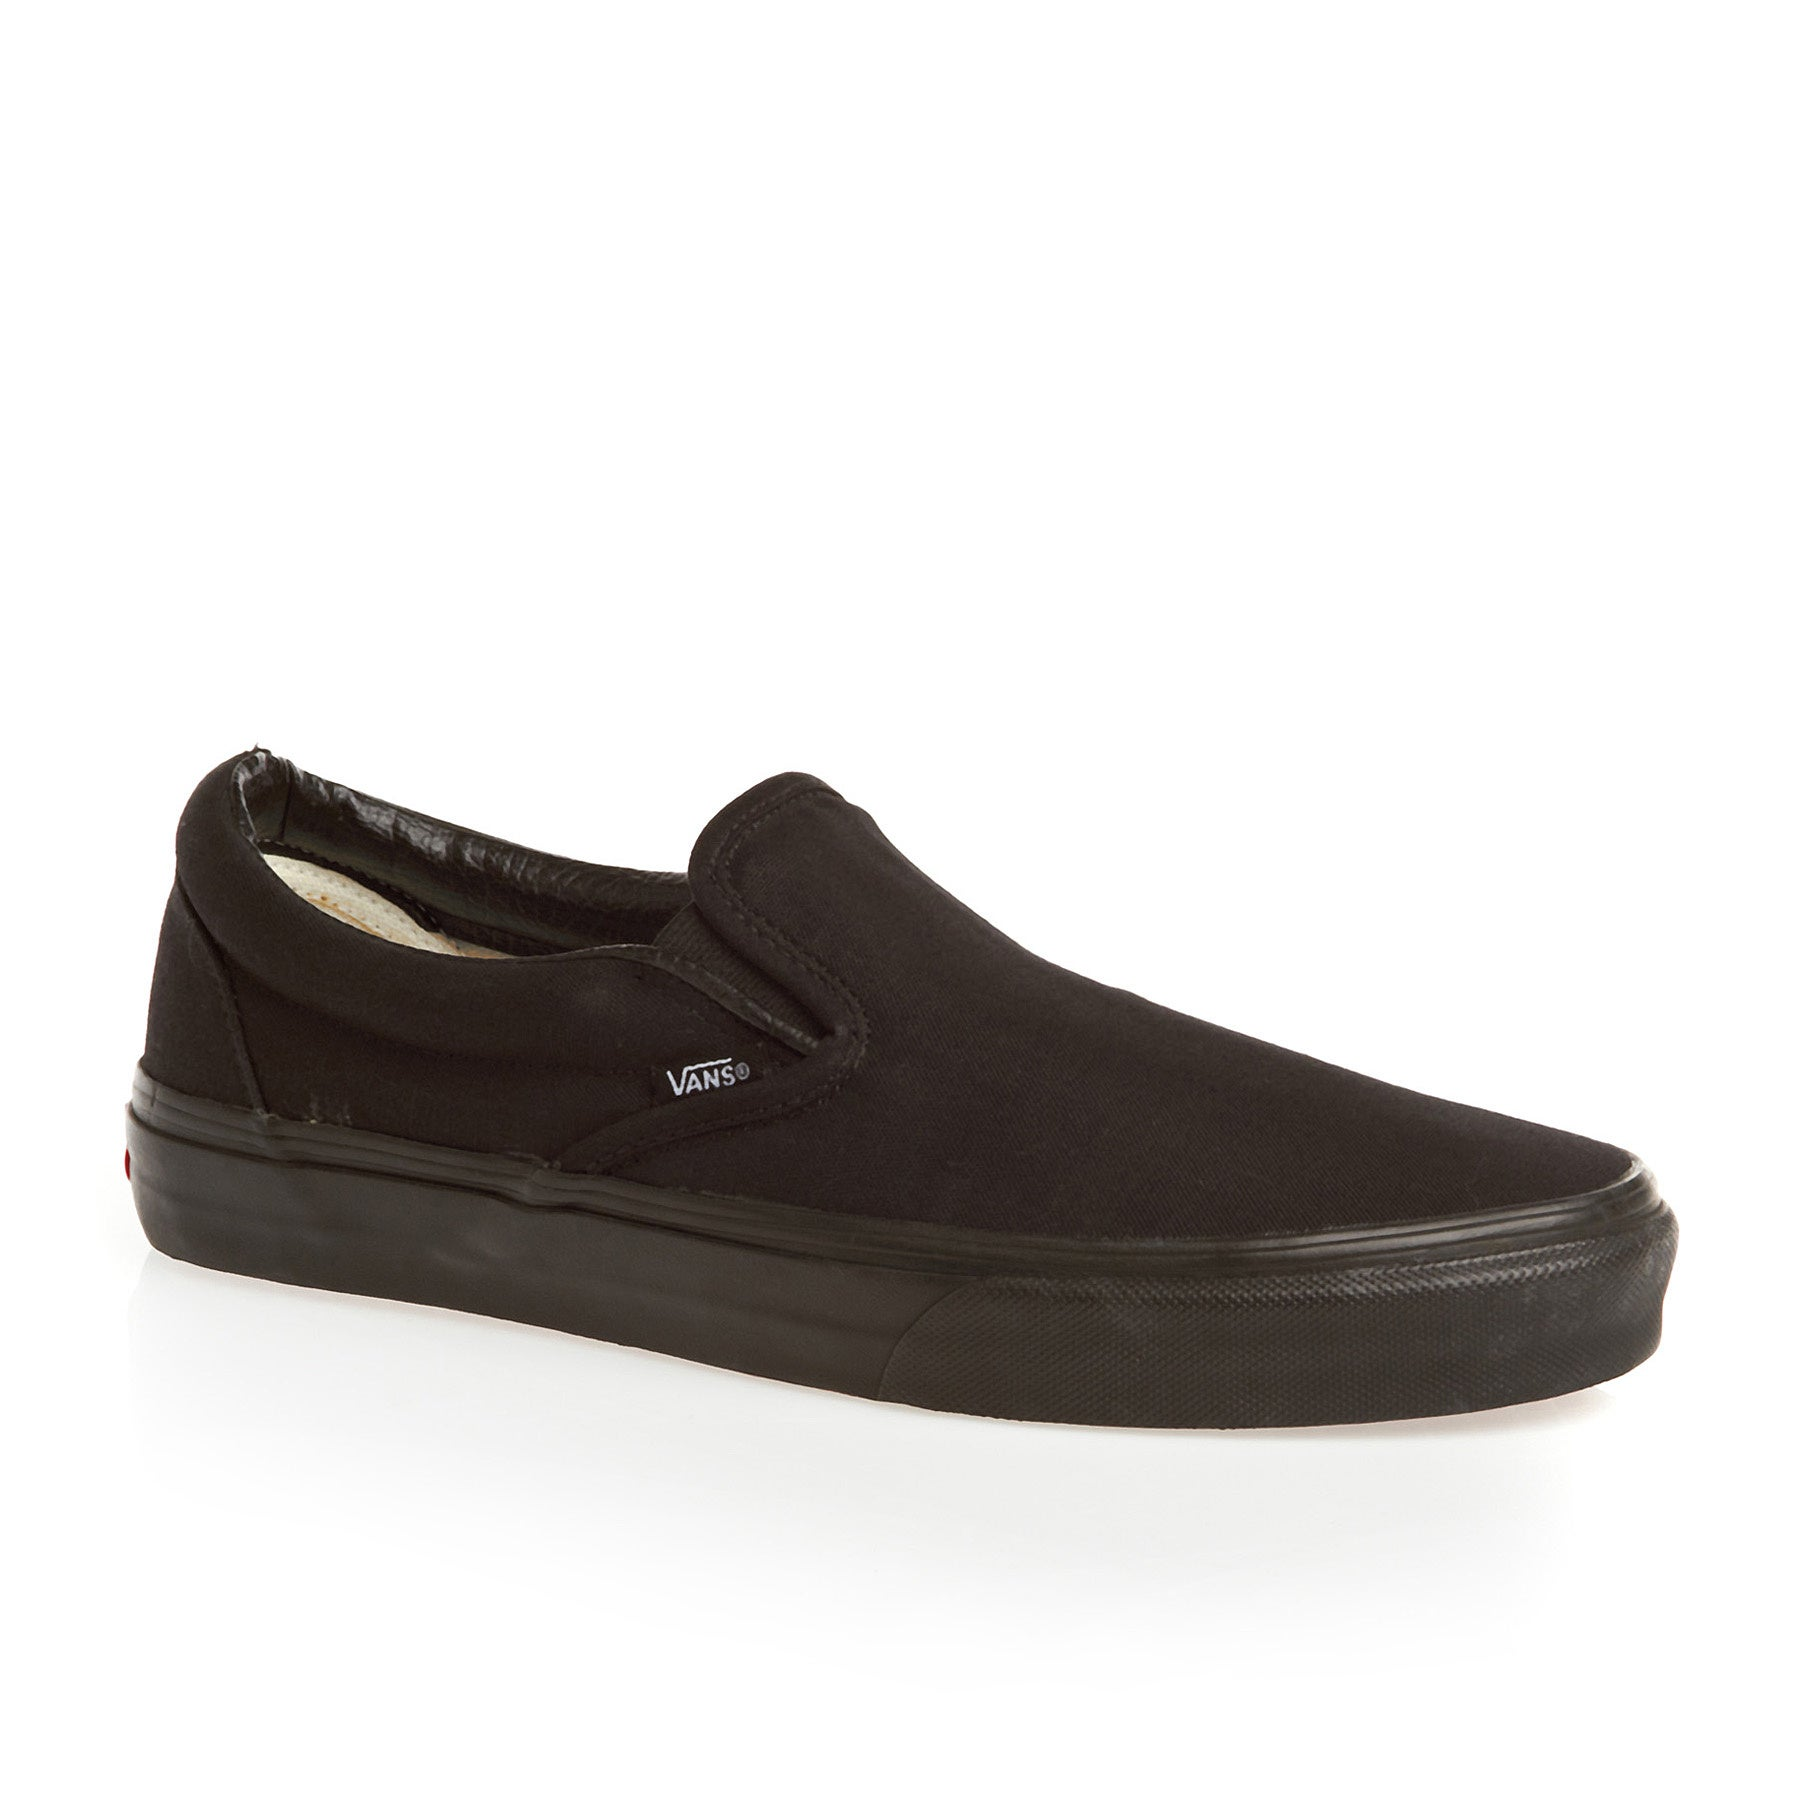 03dc0b467fc1 Vans Classic Slip On Shoes available from Surfdome